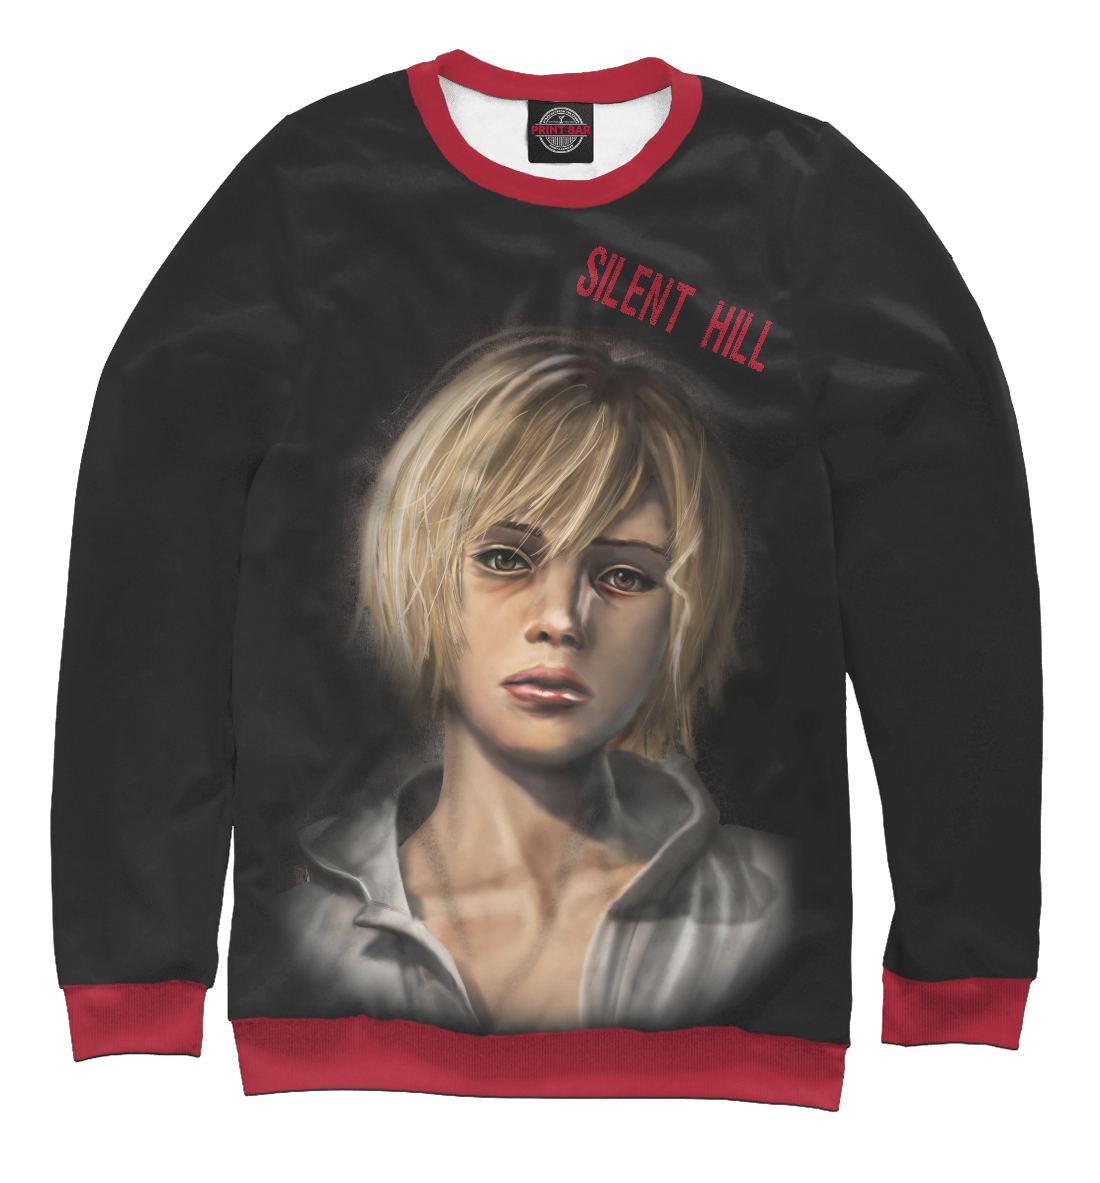 Купить Heather Mason (Silent Hill), Printbar, Свитшоты, RPG-479808-swi-1